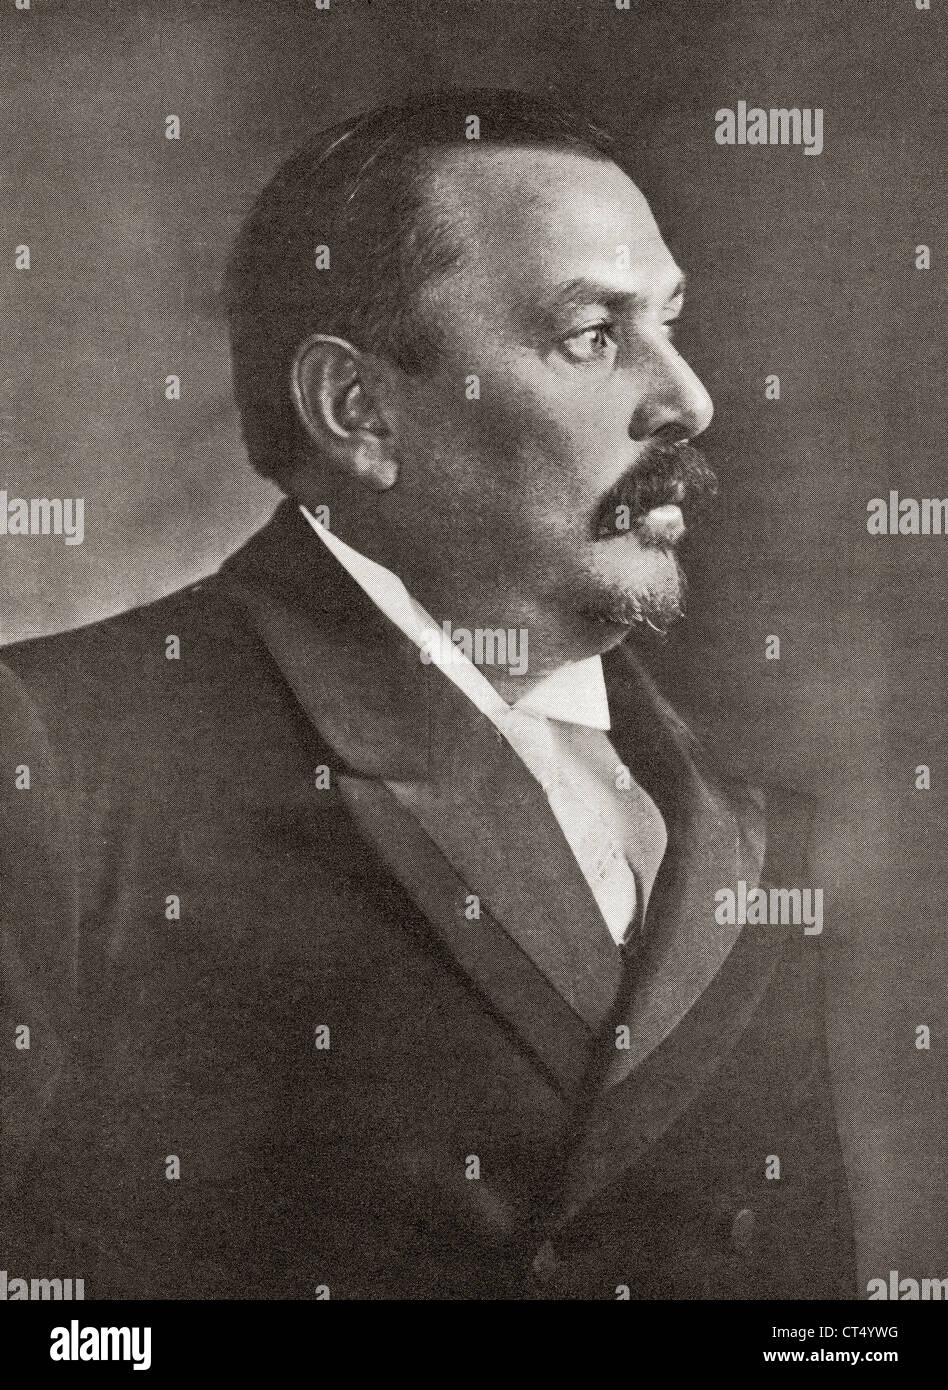 Louis Botha, 1862 – 1919. Afrikaner and first Prime Minister of the Union of South Africa. From The Year 1919 Illustrated. - Stock Image